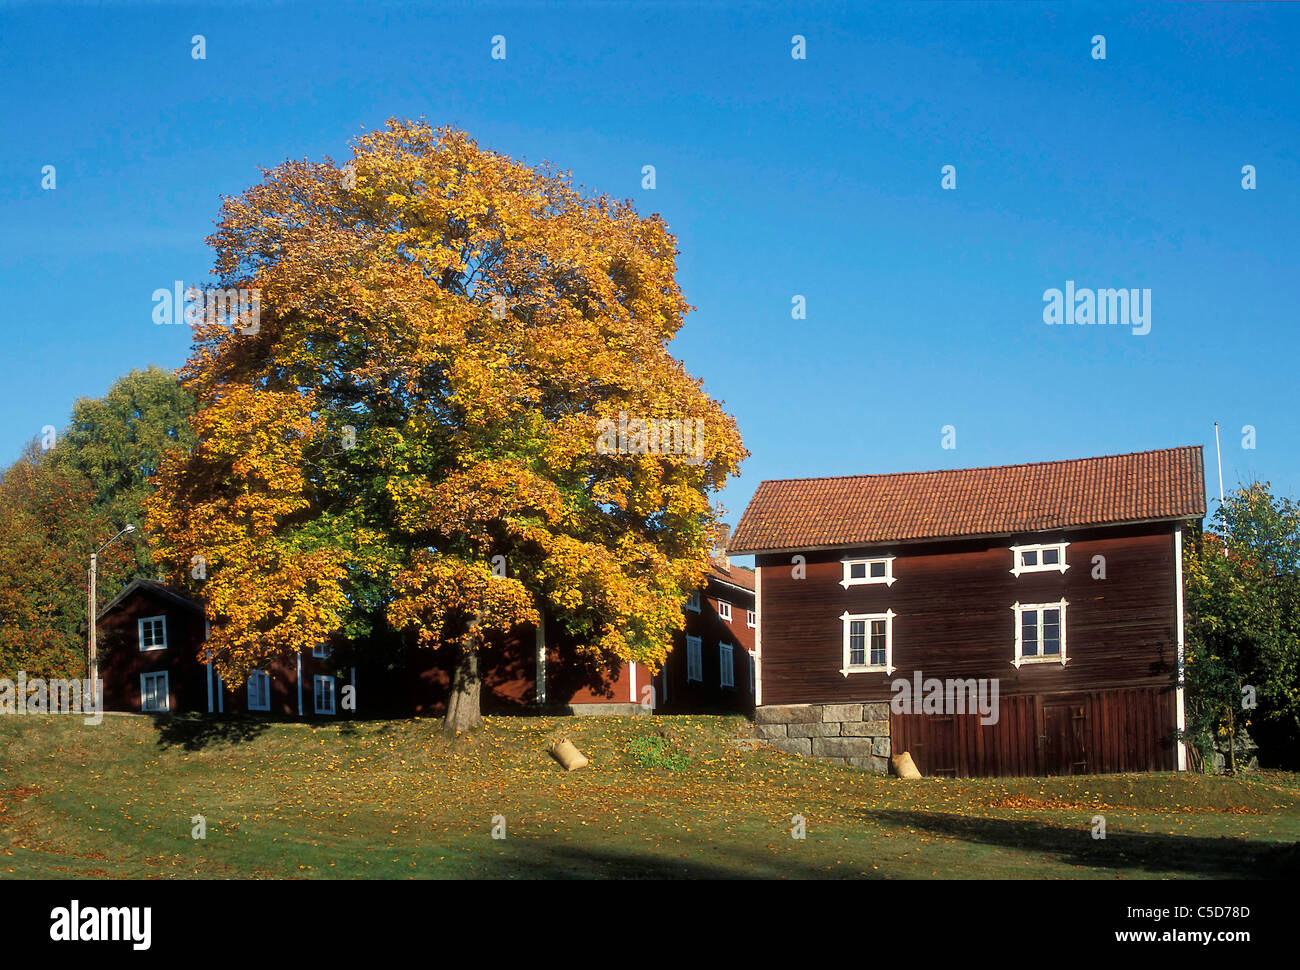 Autumnal tree on lawn by country houses against clear blue sky - Stock Image